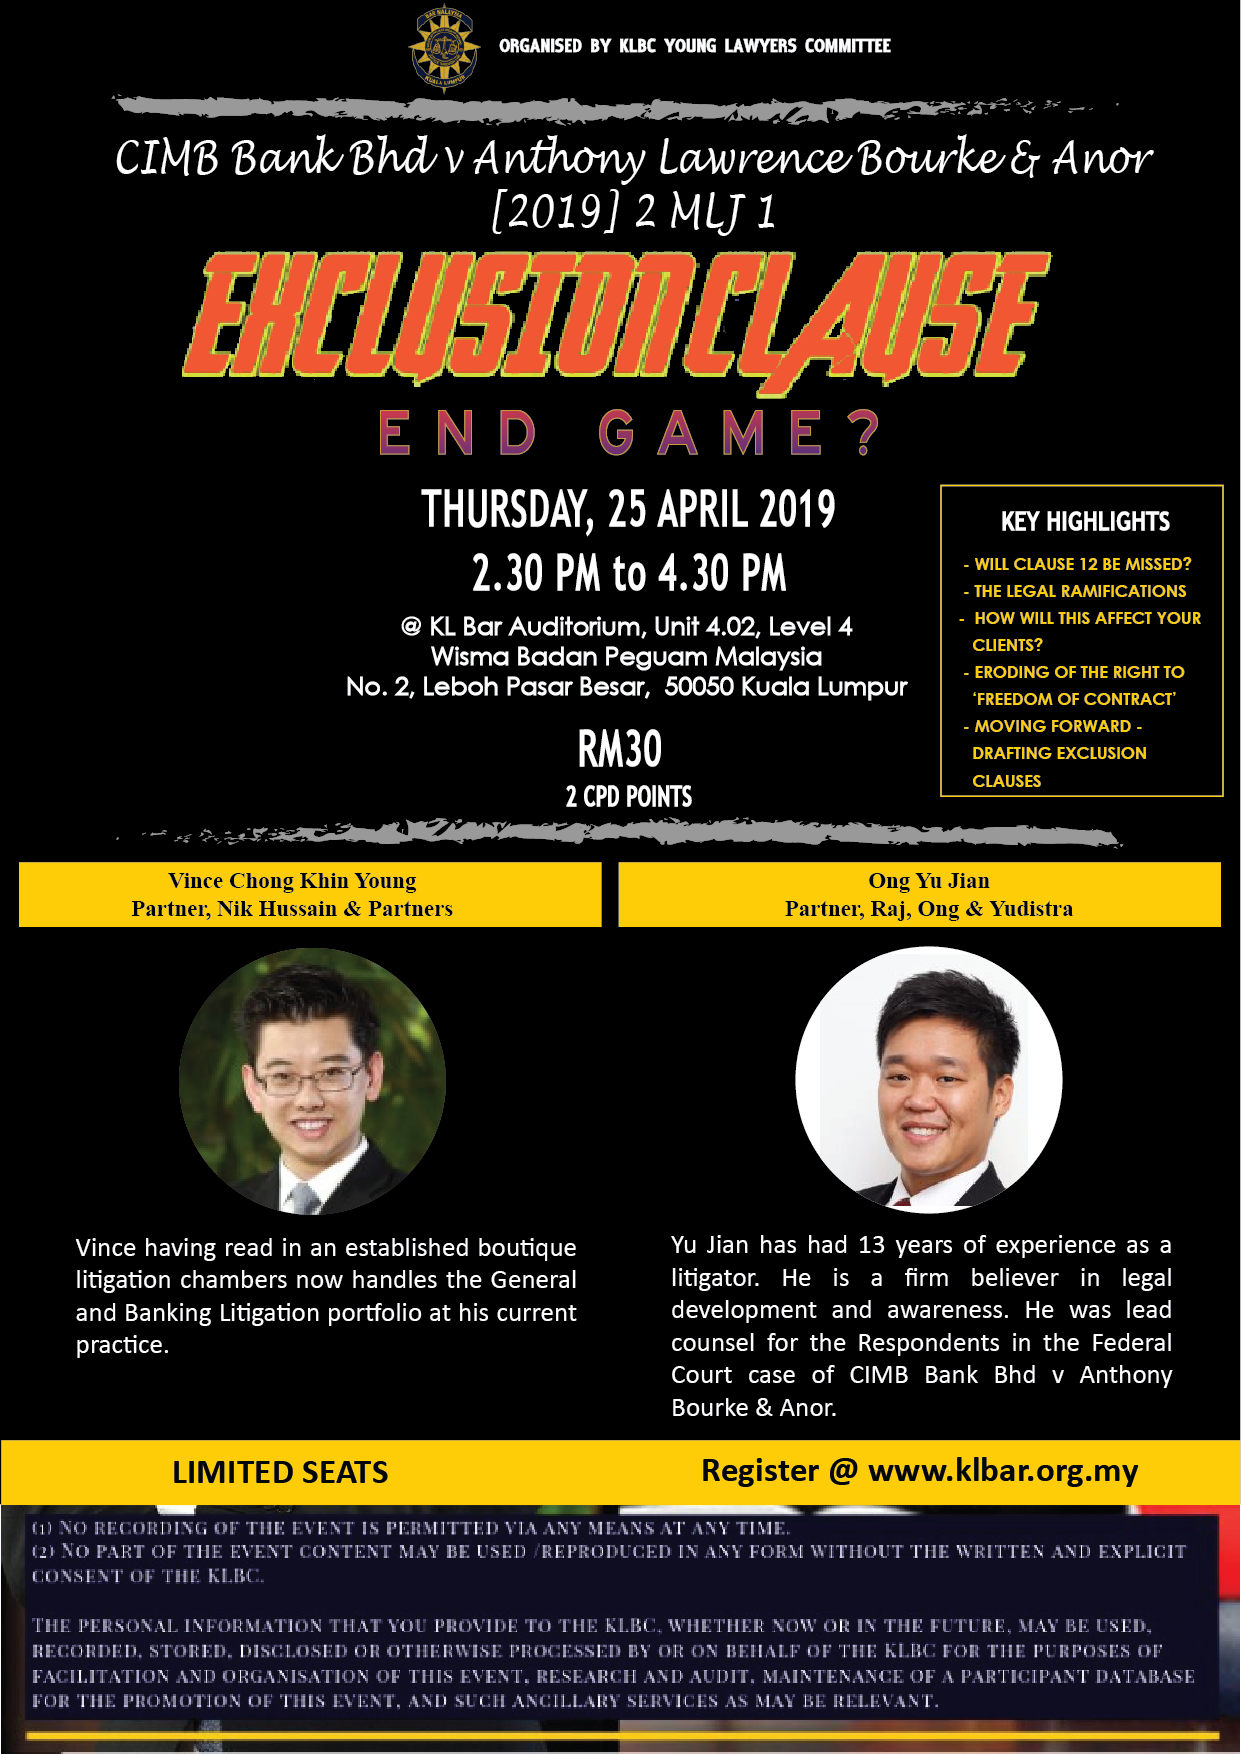 86e5859c398 REGISTRATION CLOSED: Seminar on Exclusion Clause - Endgame? on 25 April 2019  - KL BAR